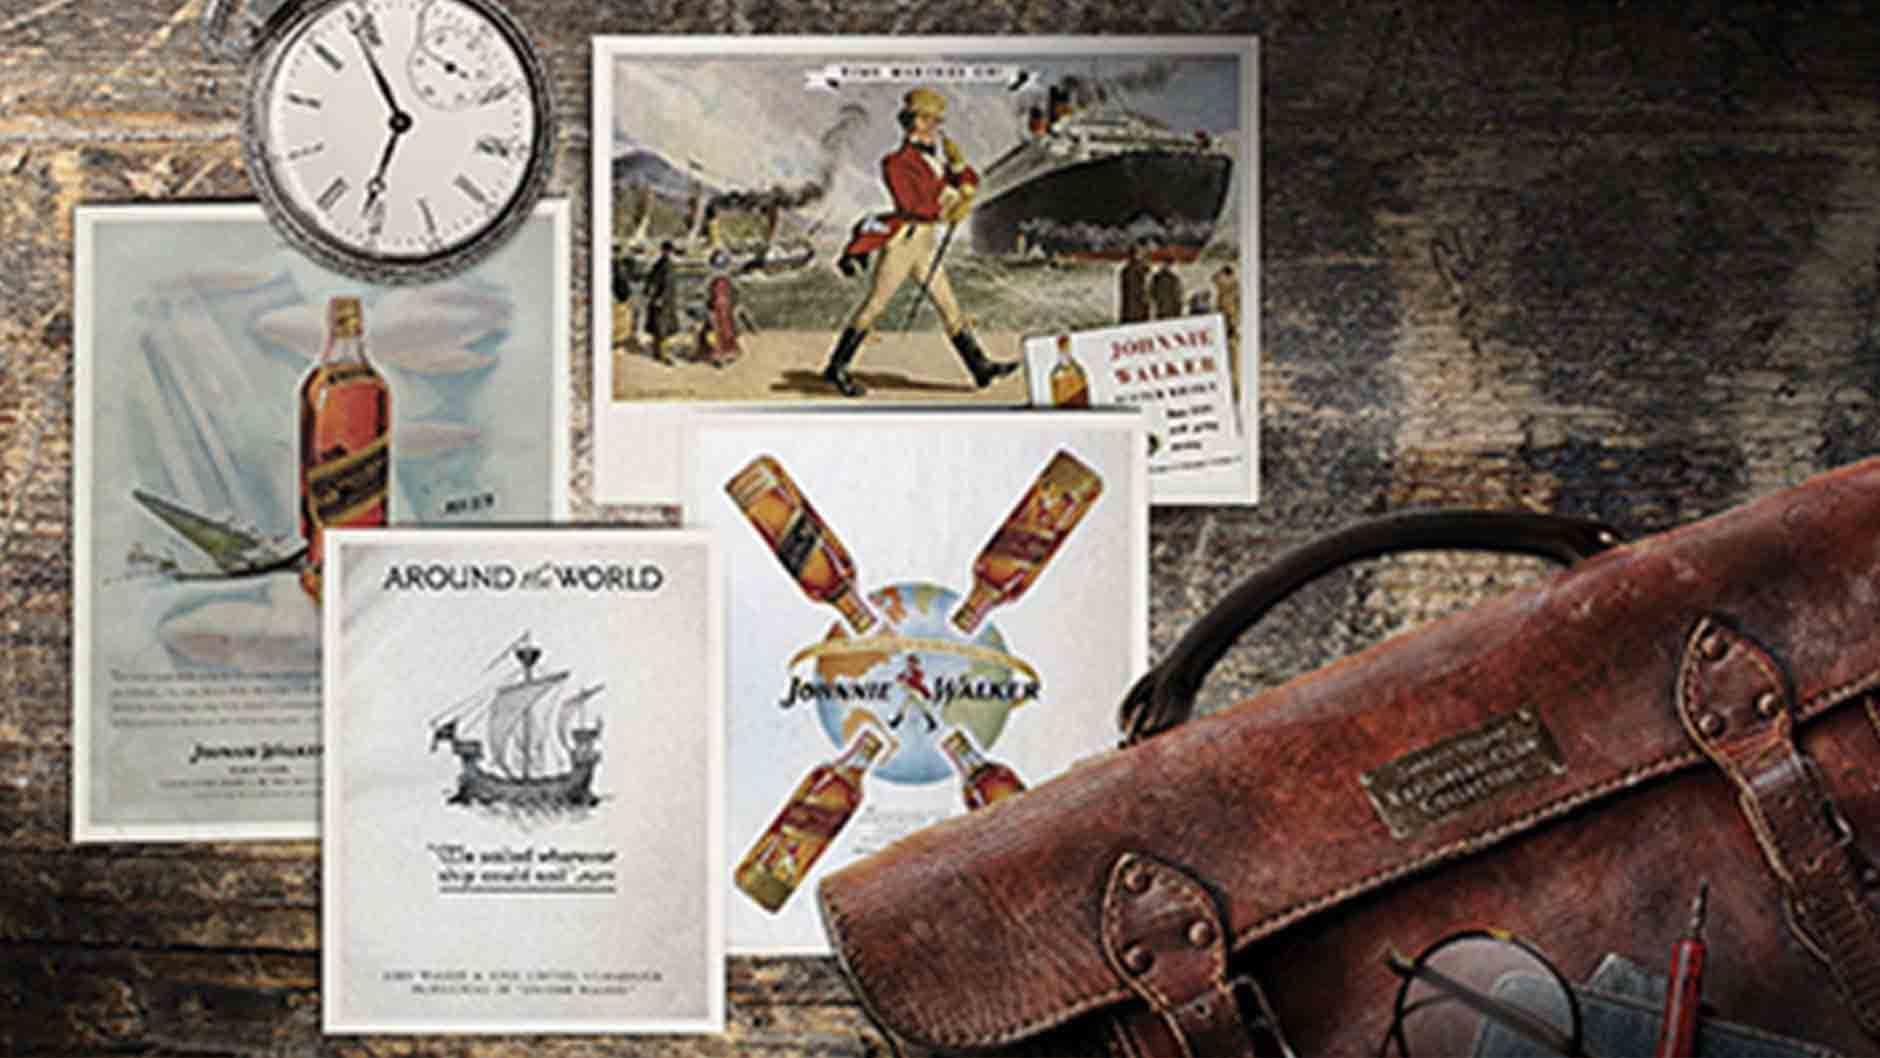 Around the world poster for Johnnie Walker Explorers' Club Collection